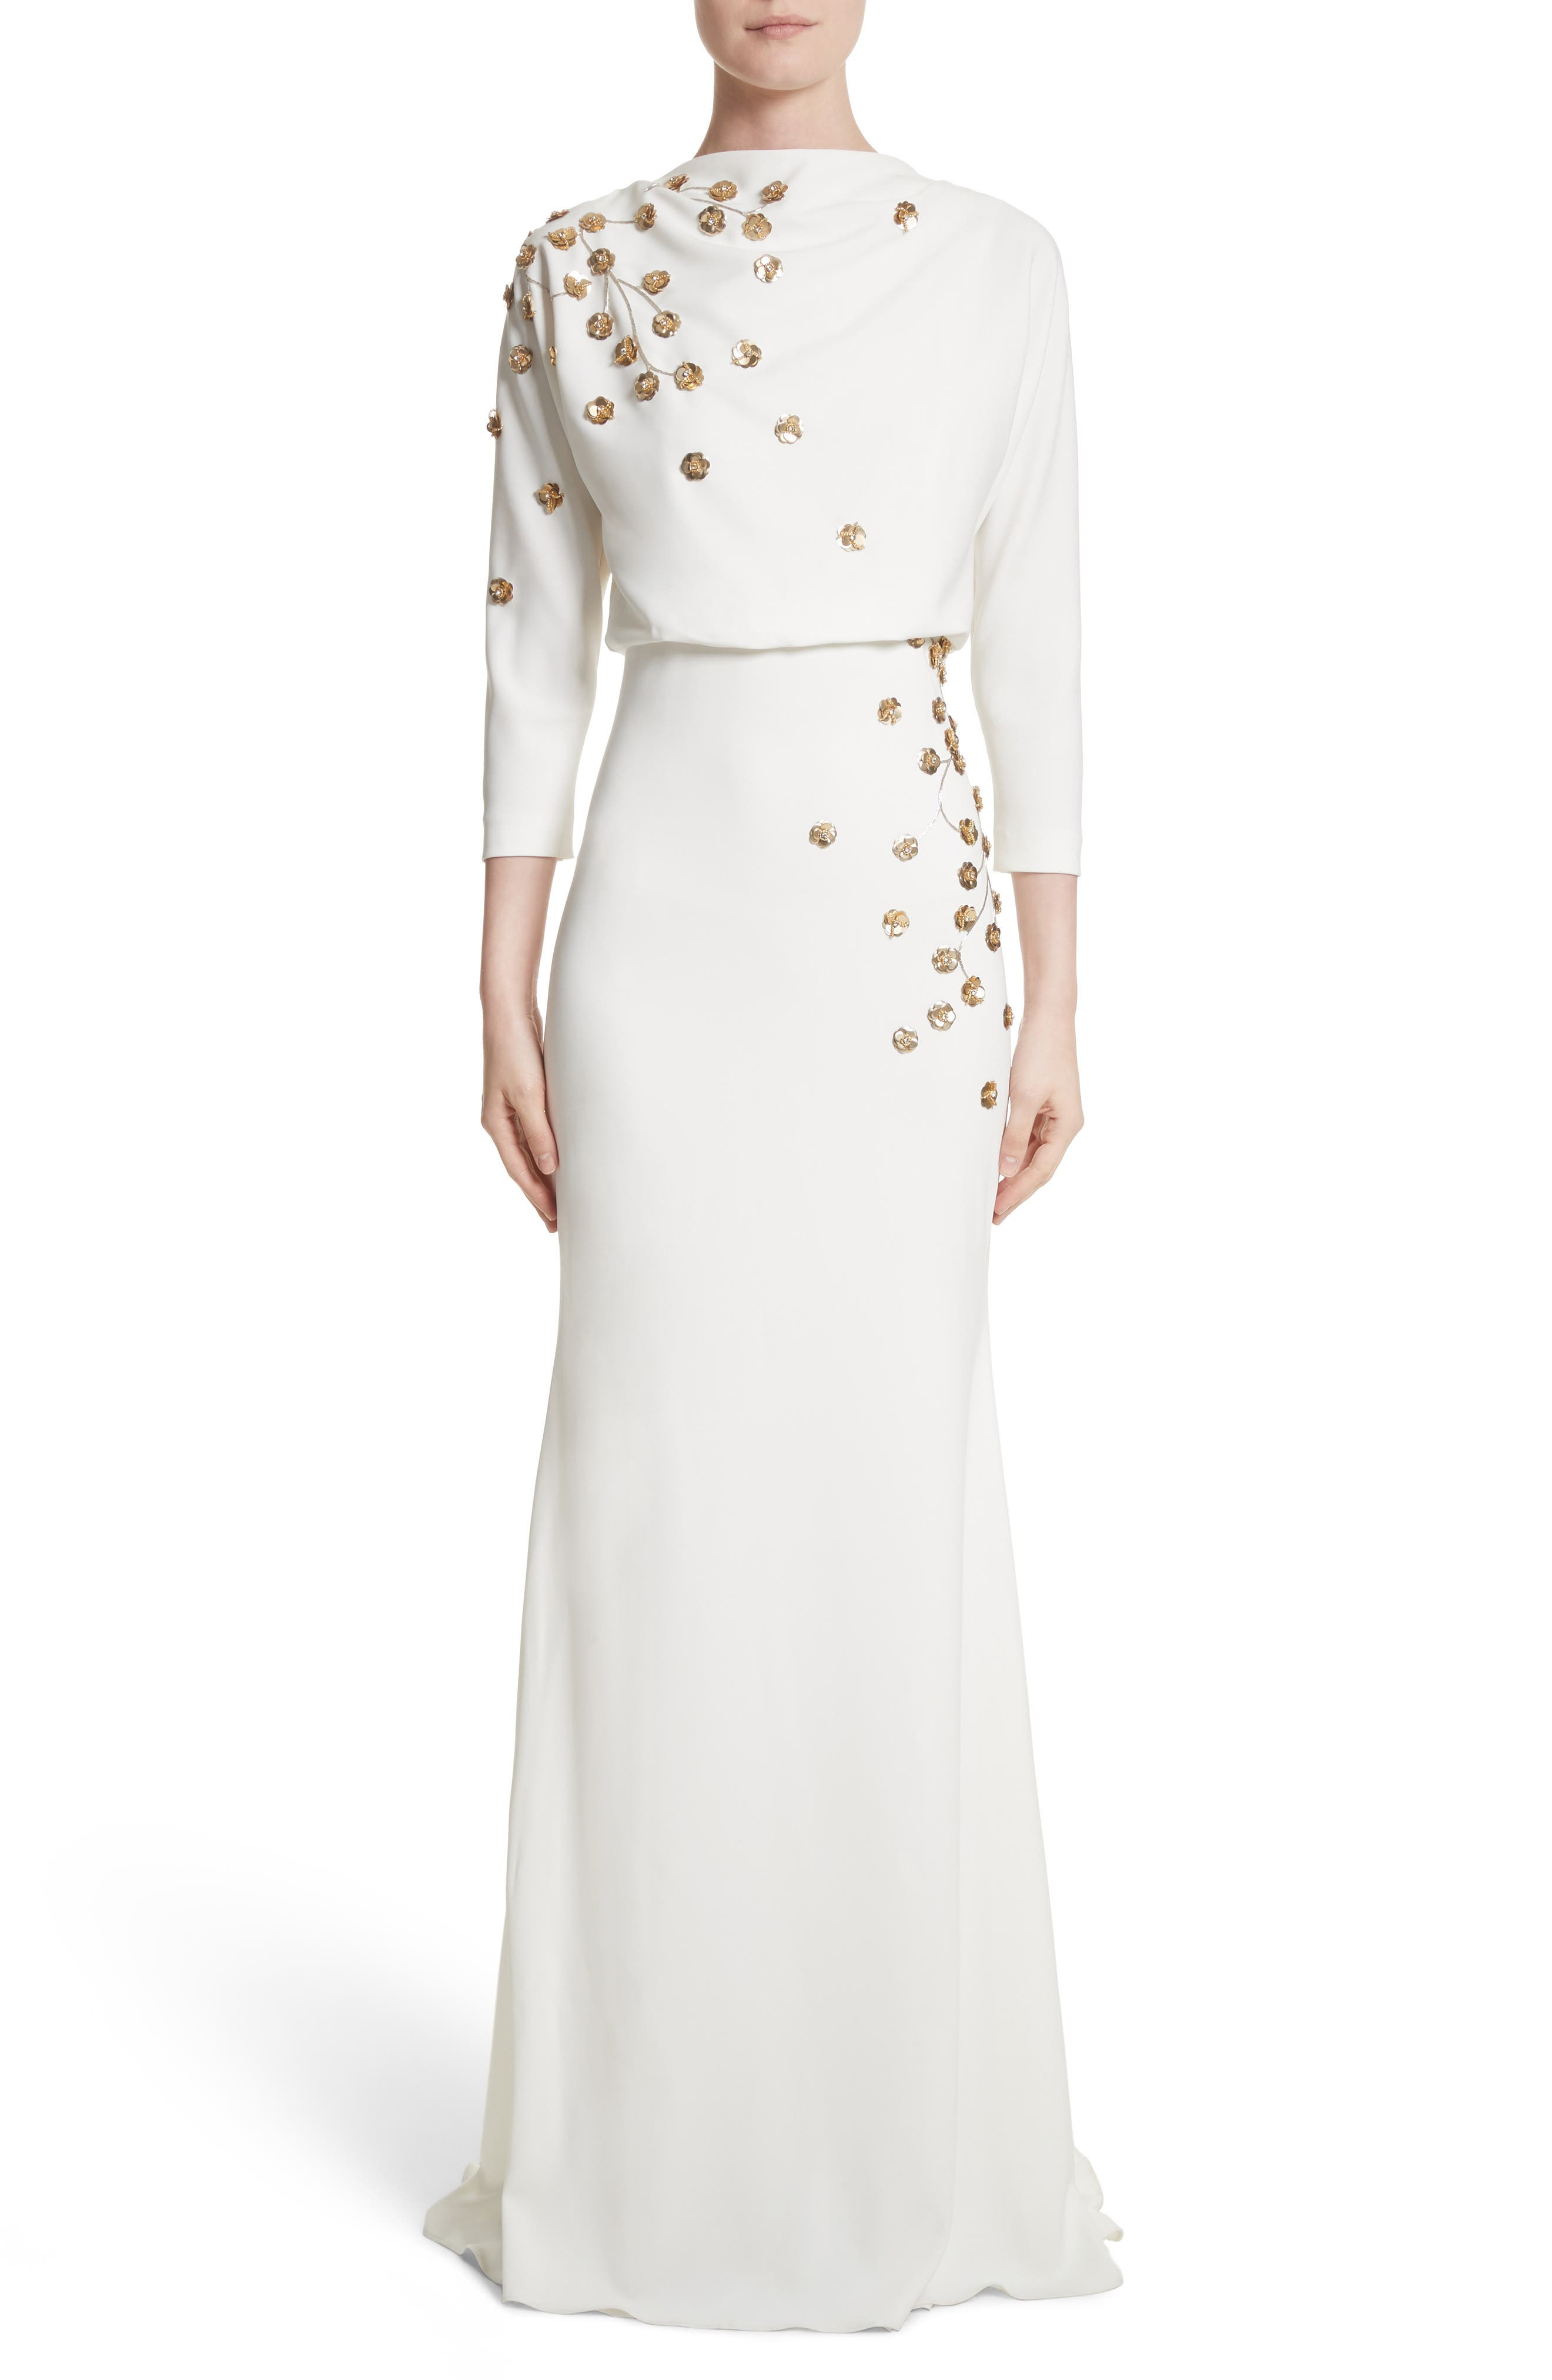 Badgley Mischka Couture Floral Embellished Crepe Gown,                             Main thumbnail 1, color,                             900